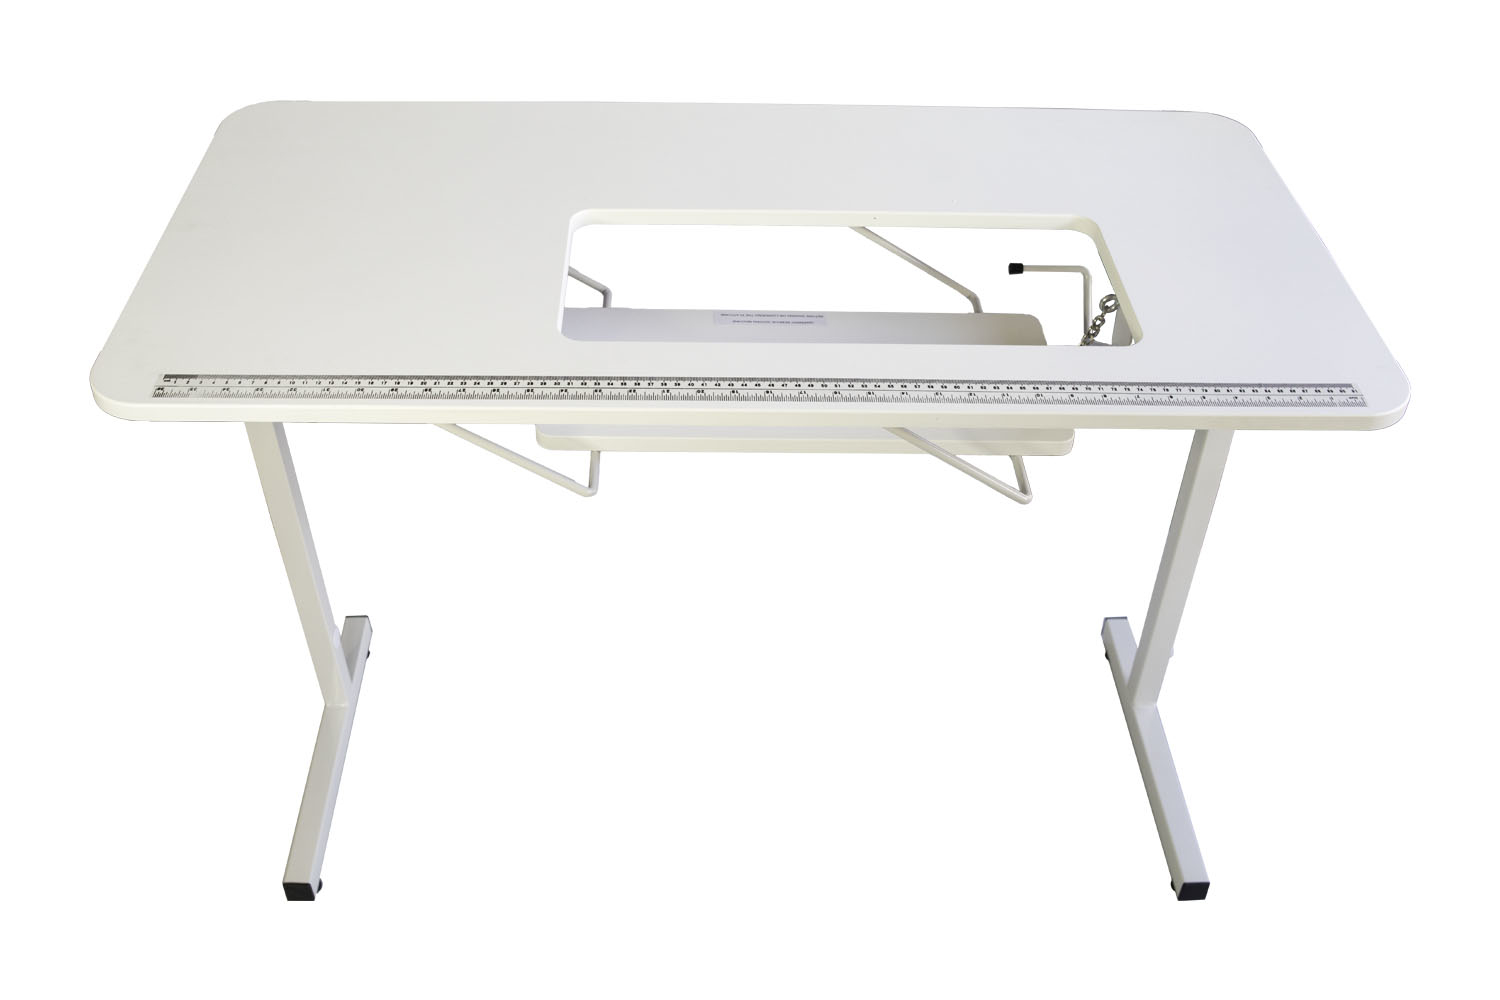 - Sewingrite Crafts Foldable Hobby Sewing Table - Walmart.com